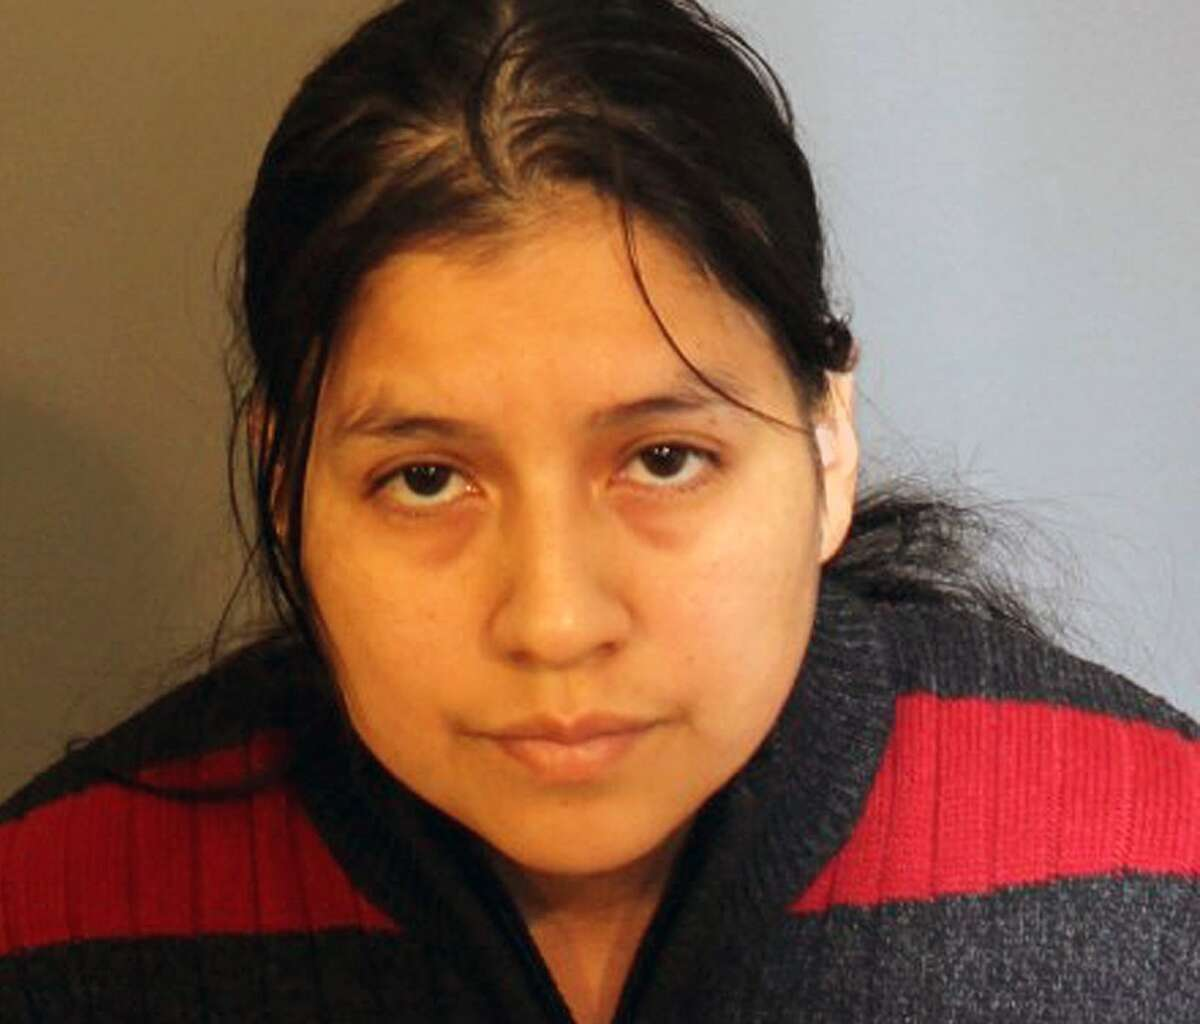 Prosecutors say Lidia Quilligana, a 31-year-old nanny, was caught on camera burning the hands and leg of a 3-year-old girl she was baby-sitting.